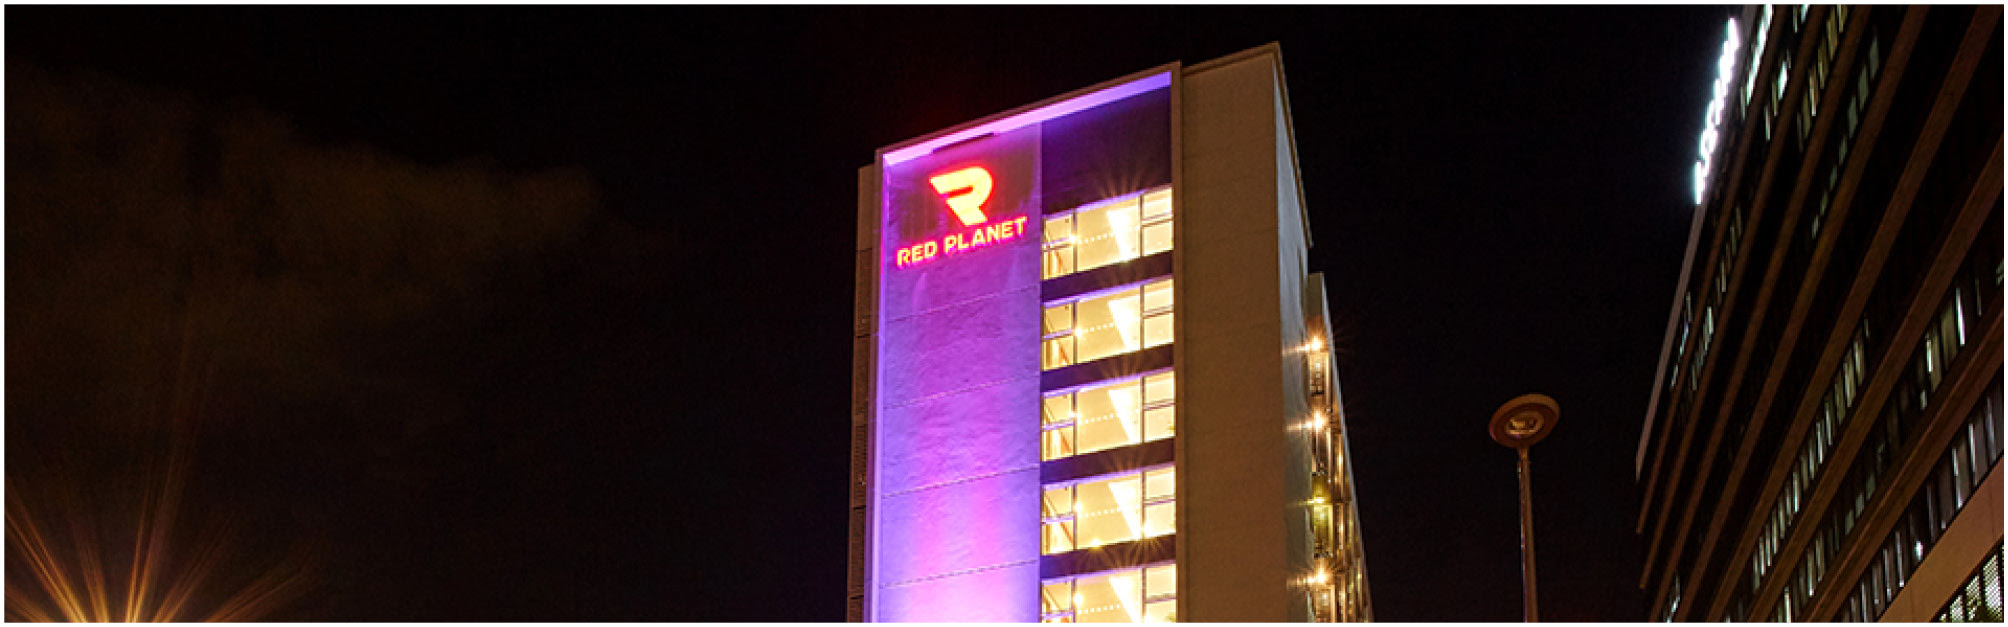 Red Planet Hotels partners with SiteMinder